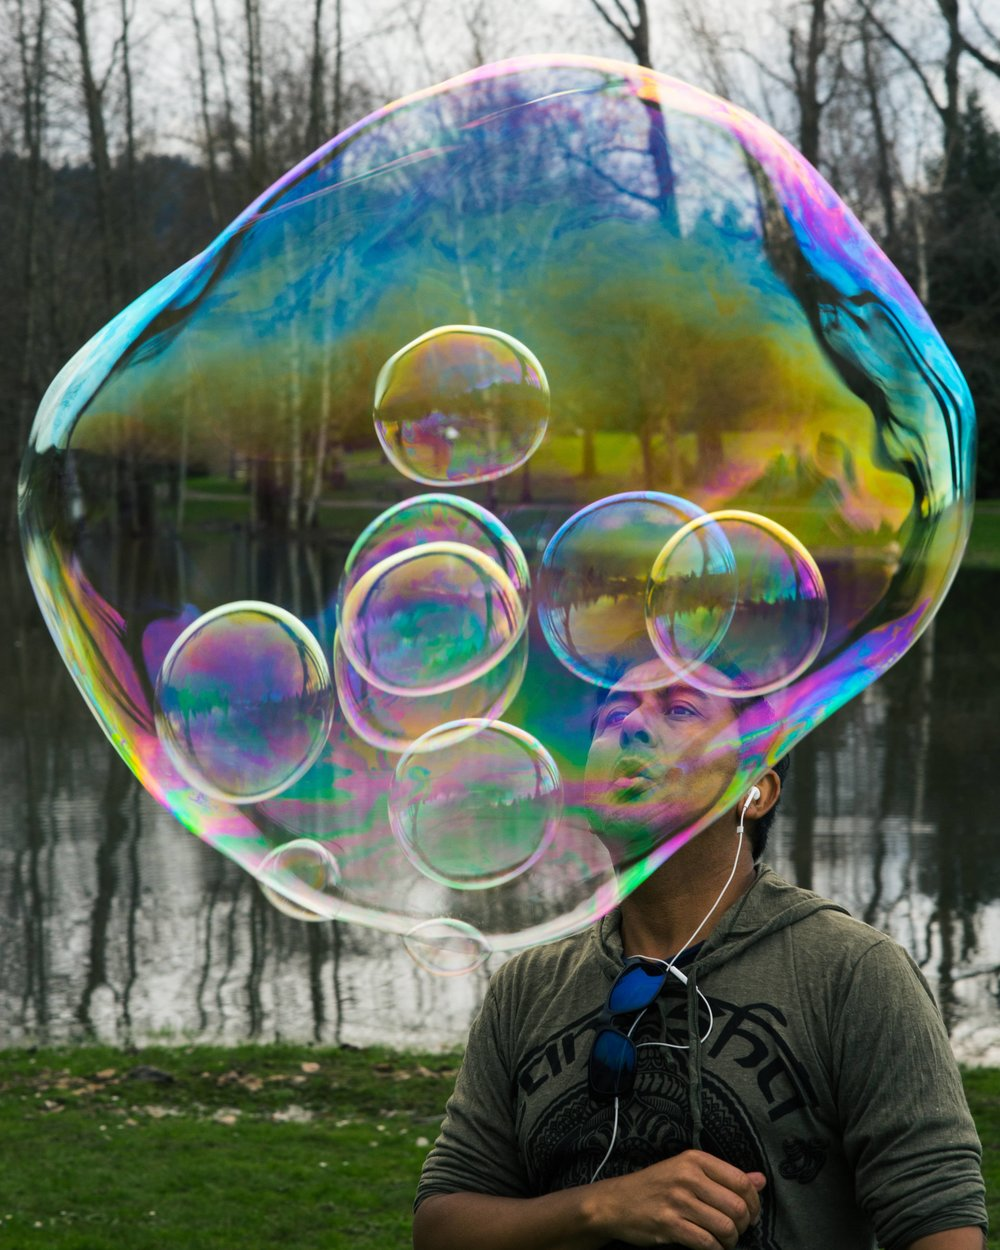 Inception Bubble Boy-7408-min.jpg